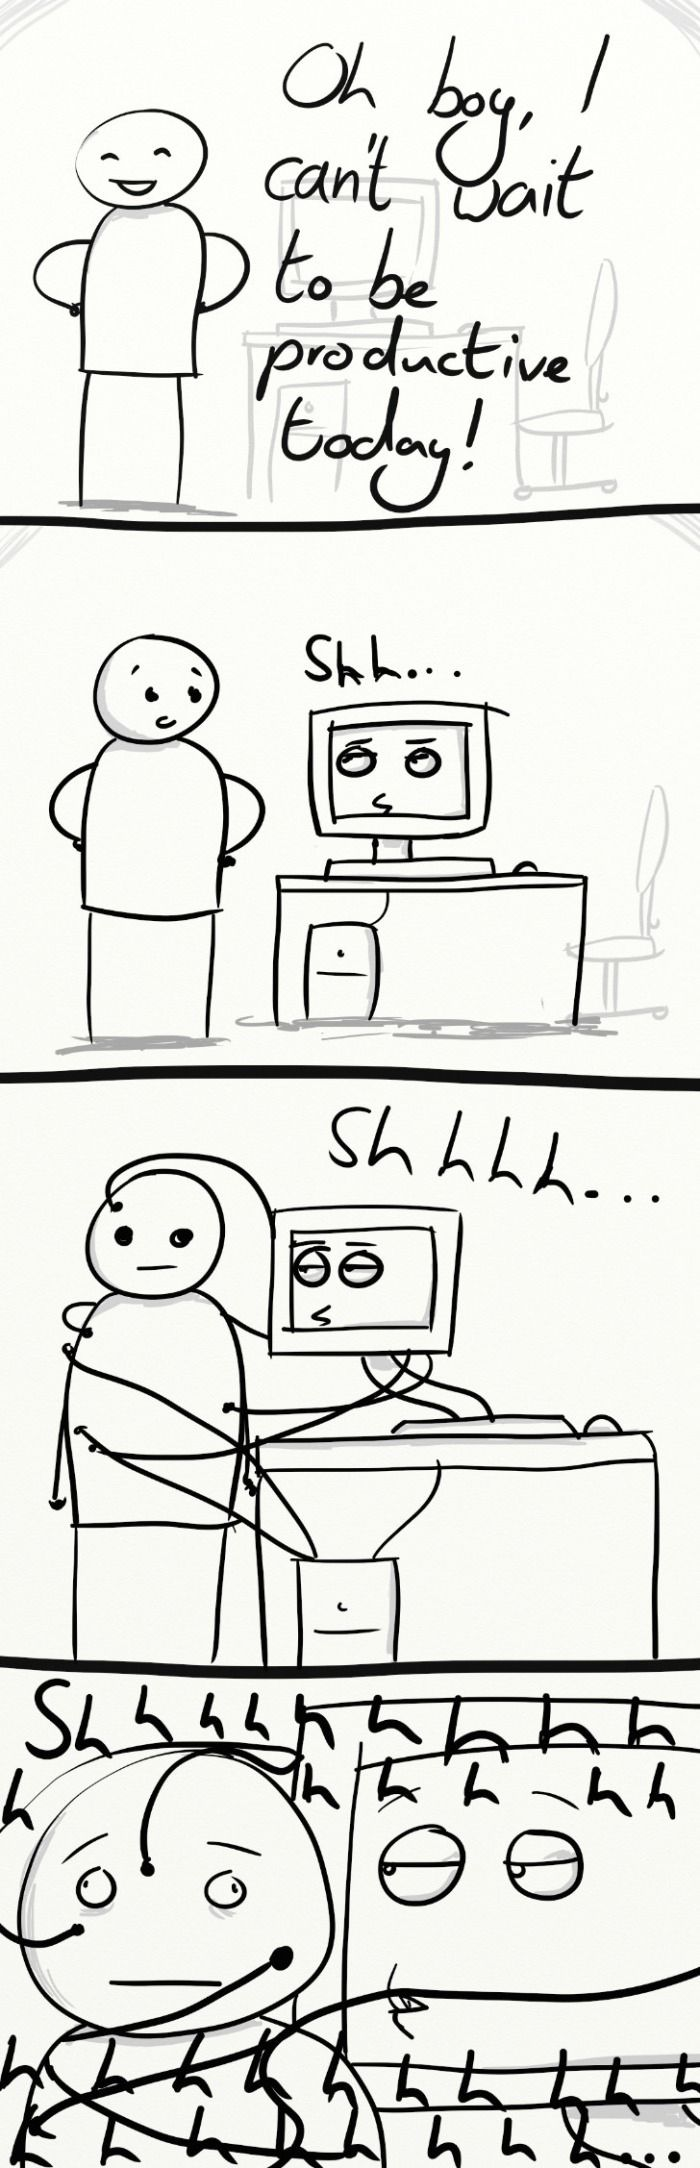 Evil Computer // funny pictures - funny photos - funny images - funny pics - funny quotes - #lol #humor #funnypictures